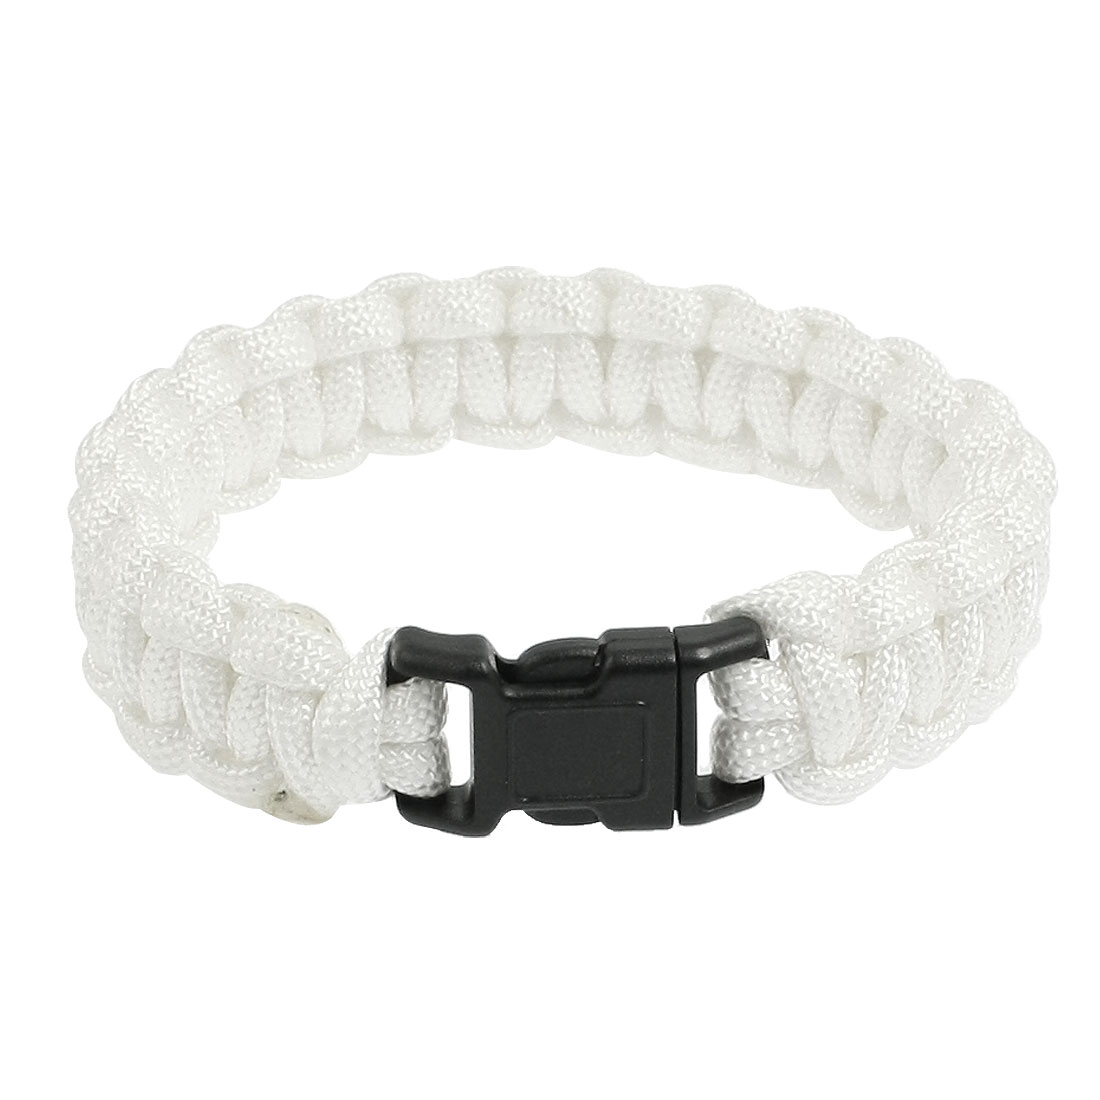 "9"" Girth Quick Release Buckle Survival Bracelet White 220Lbs"